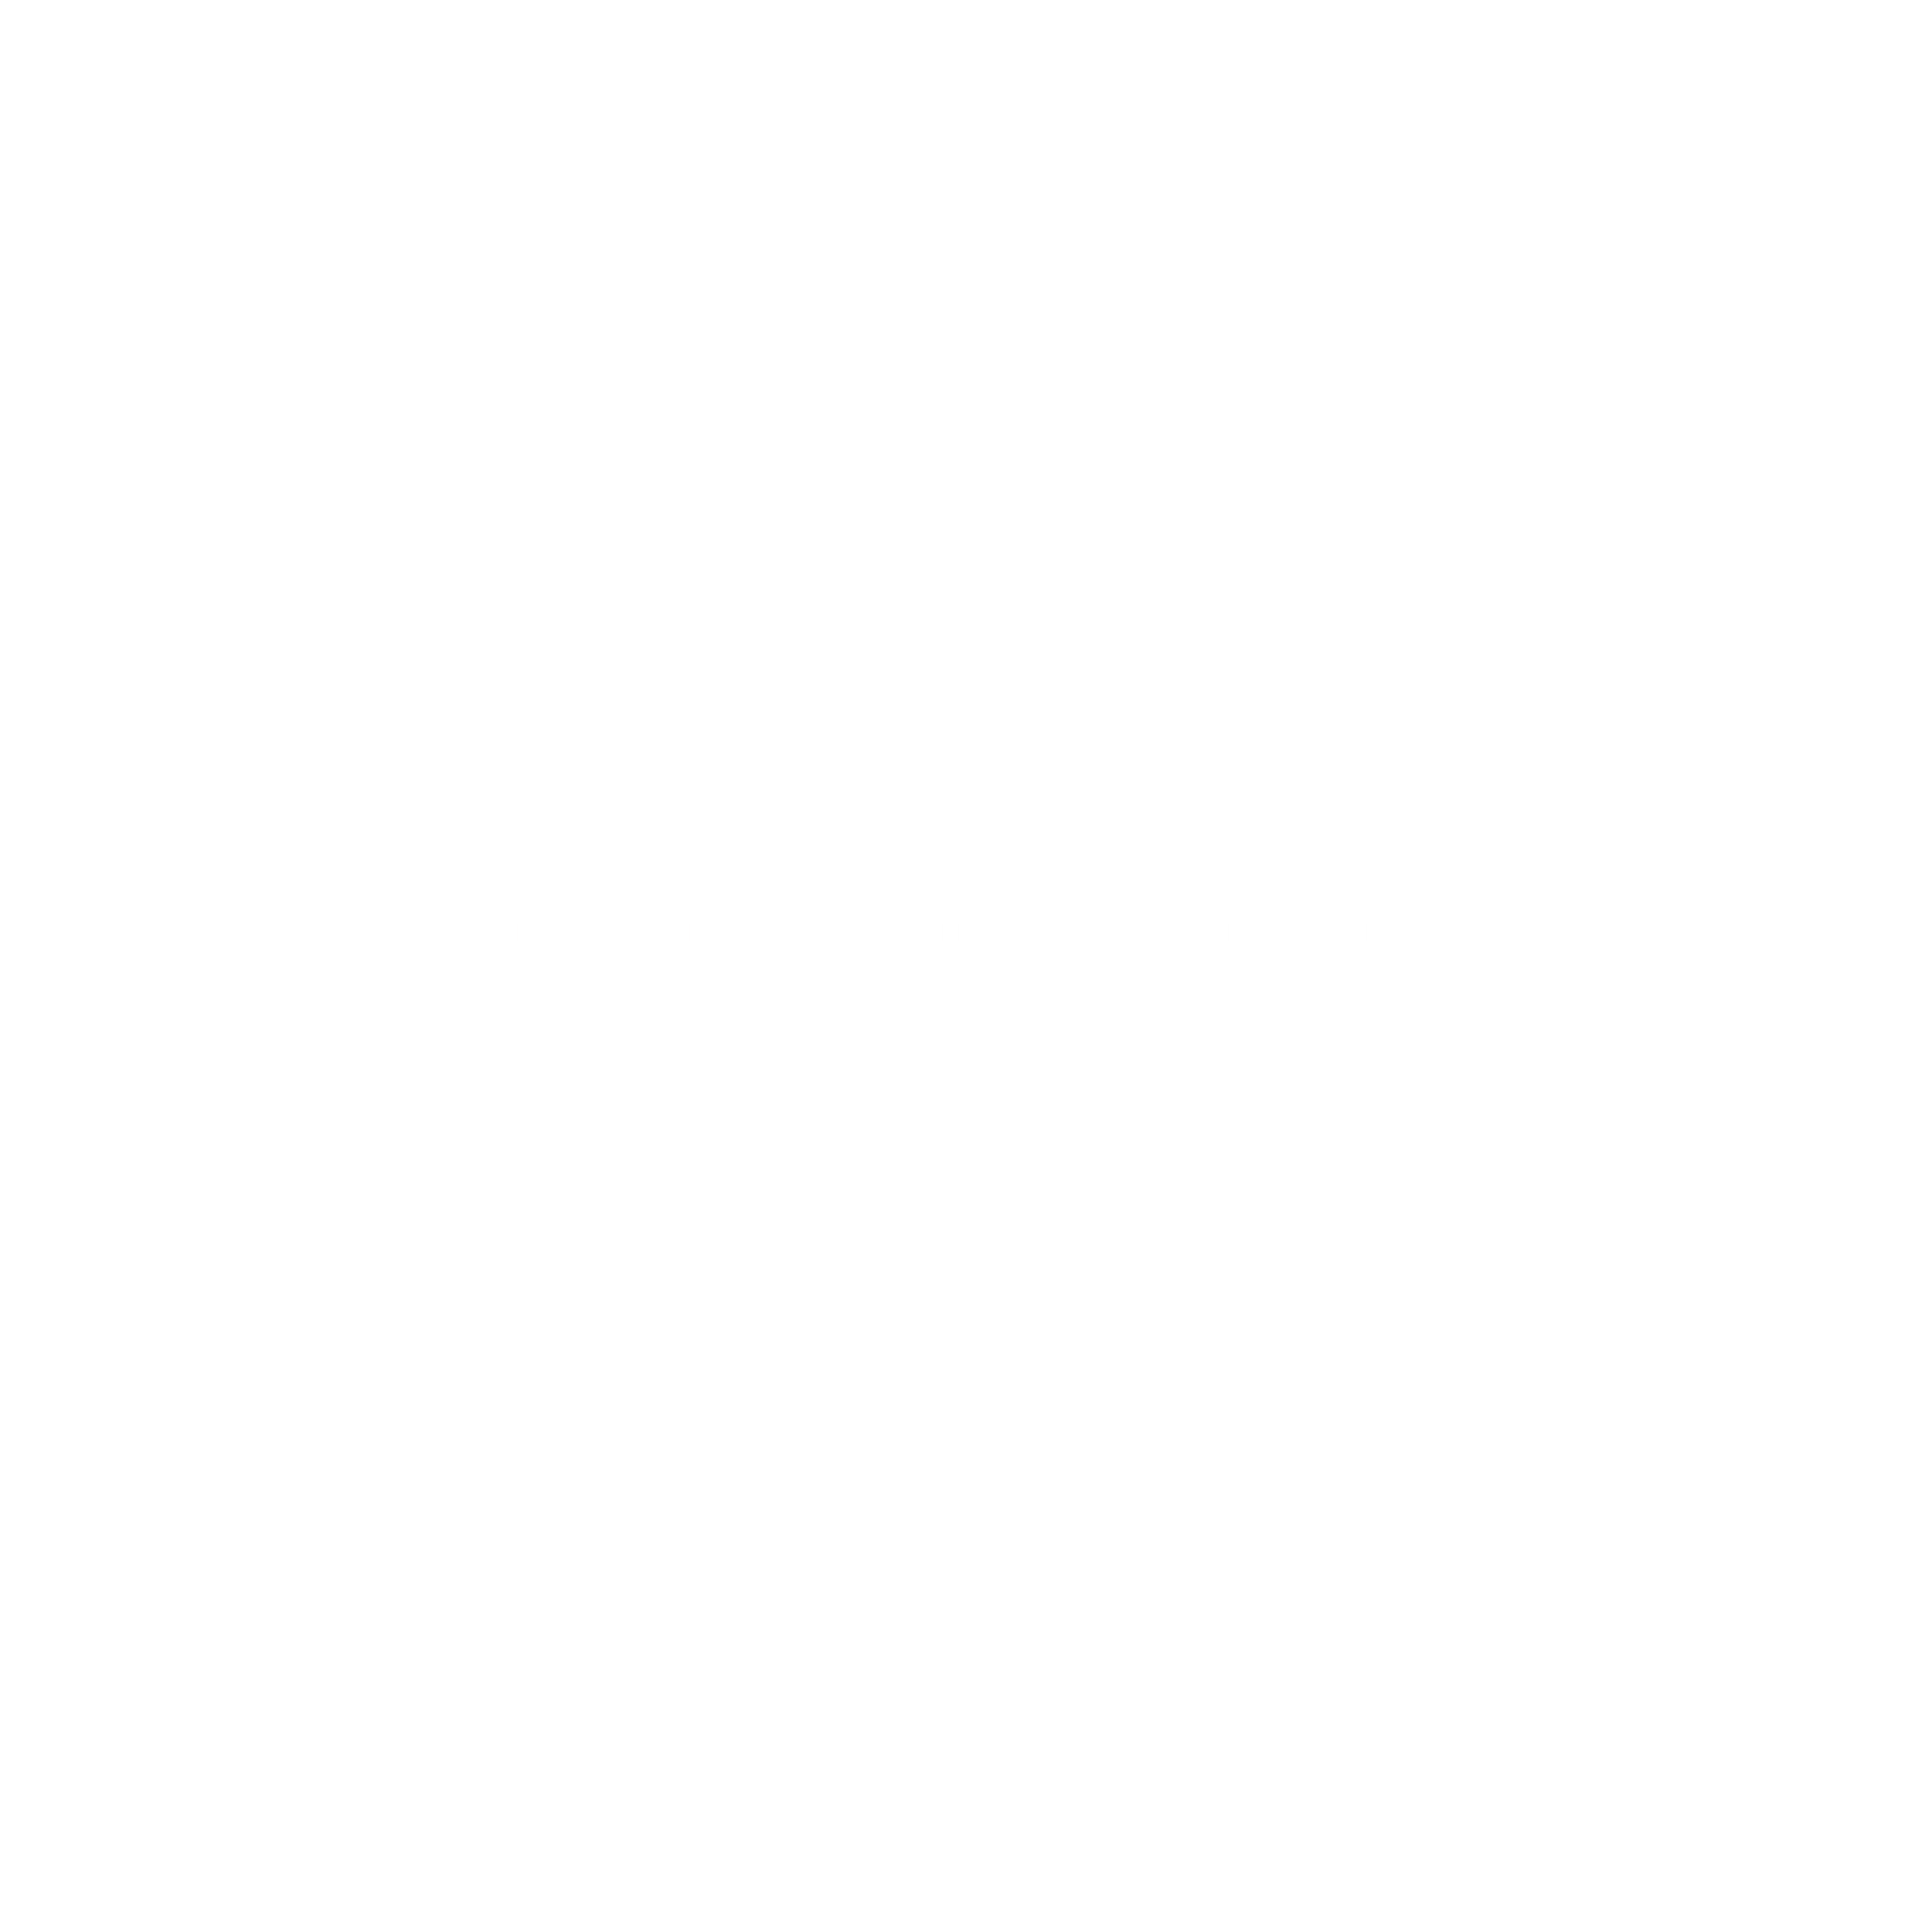 AARP Innovation Labs_Color copy